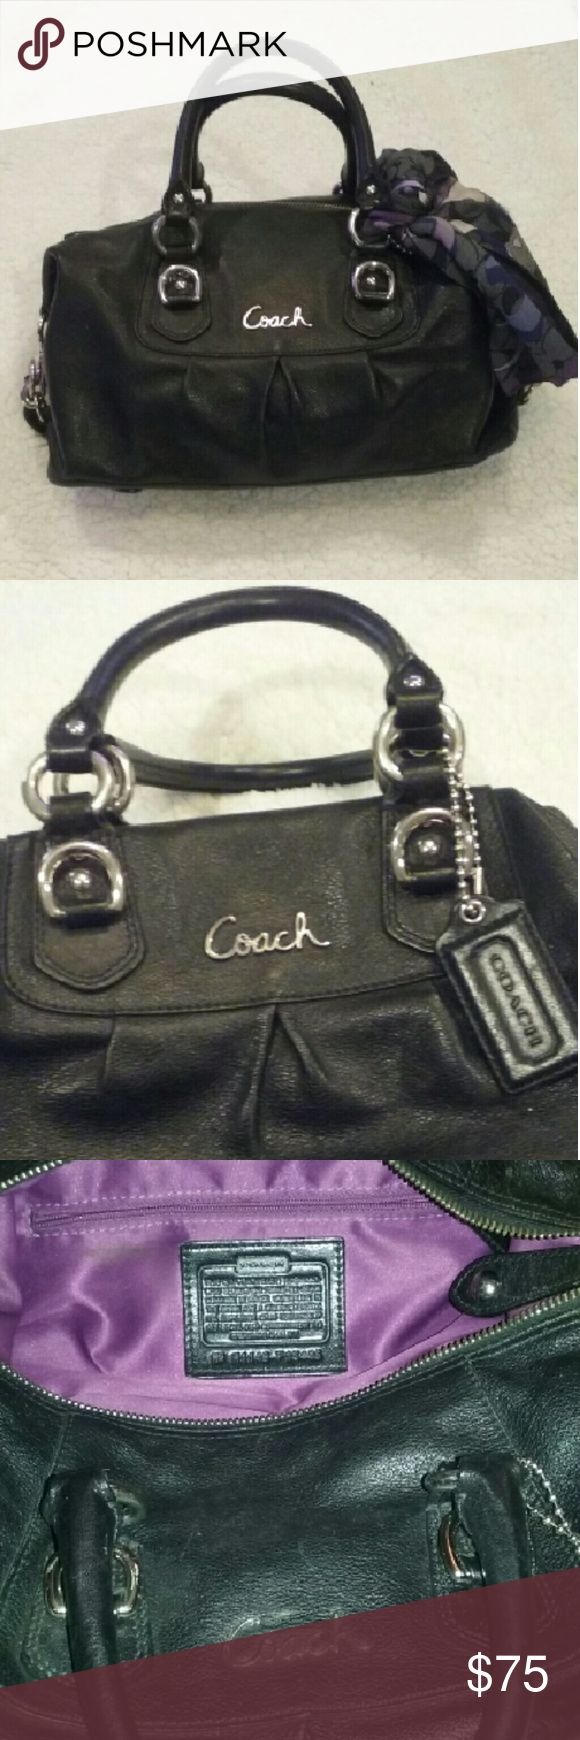 Black Authentic Coach Purse Black leather Coach purse. Great condition. Clean inside. Coach scarf was added to it so optional. Coach Bags Satchels